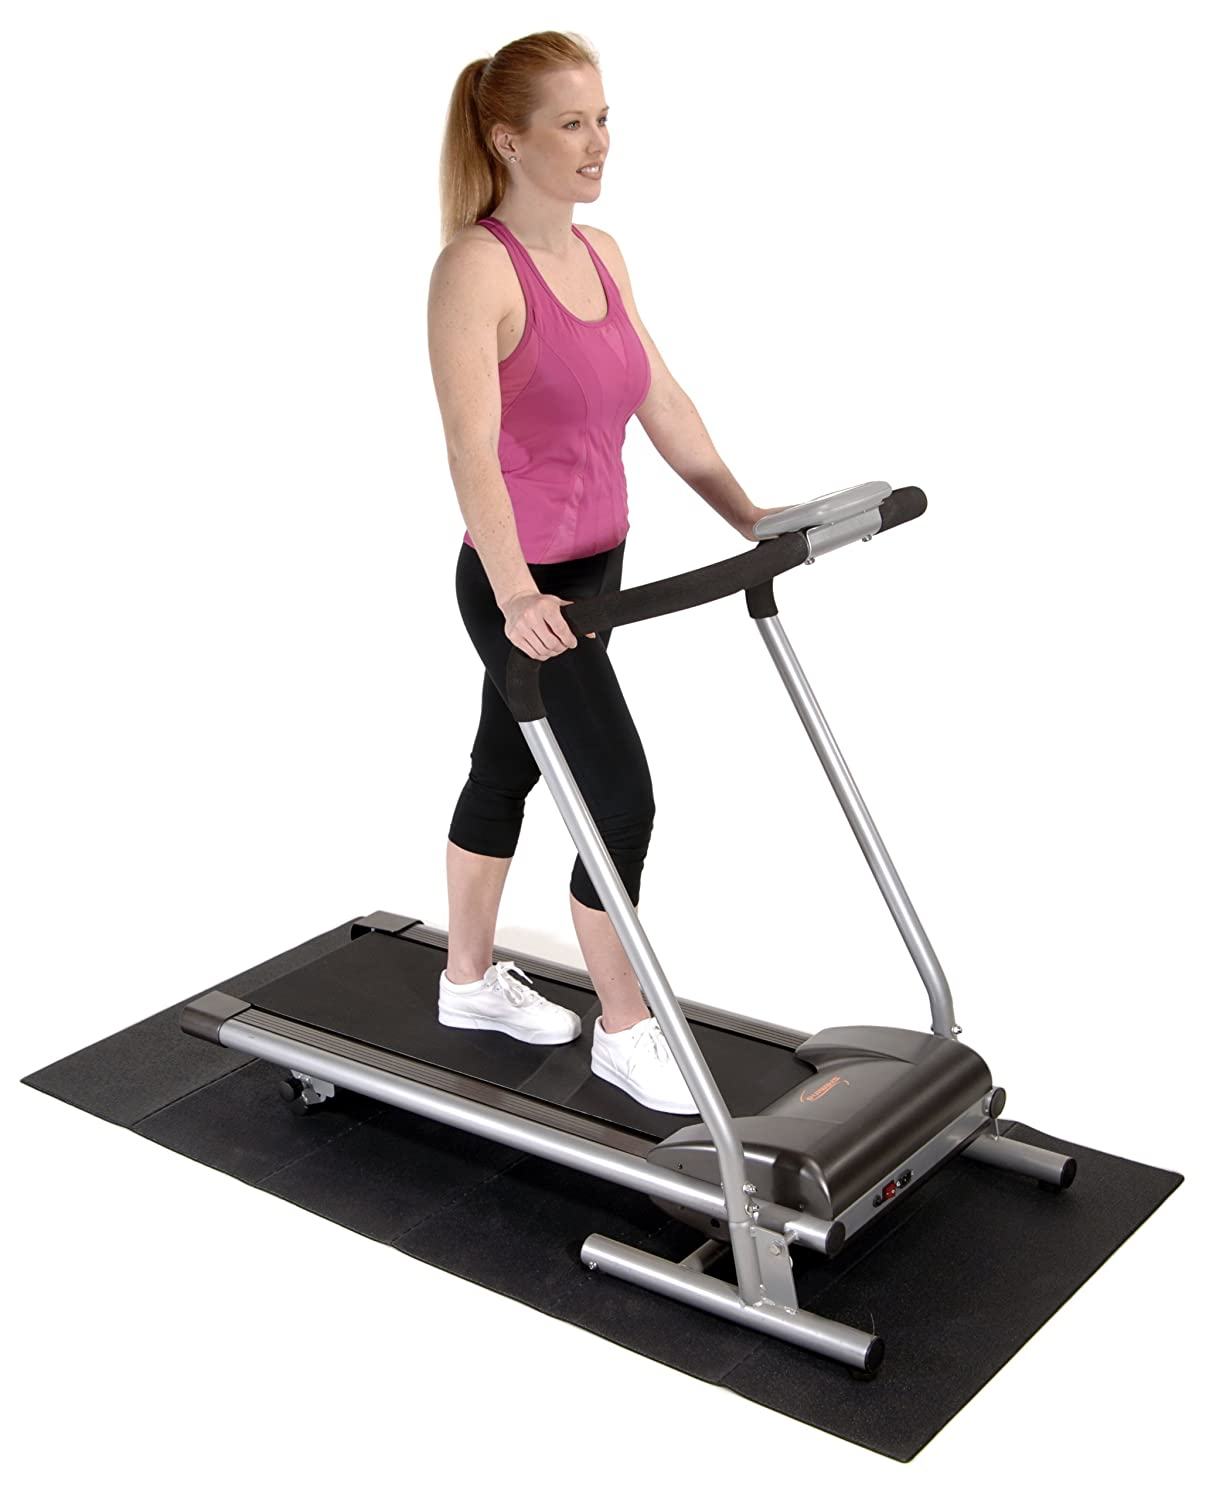 Benefits of Using Treadmill Mat